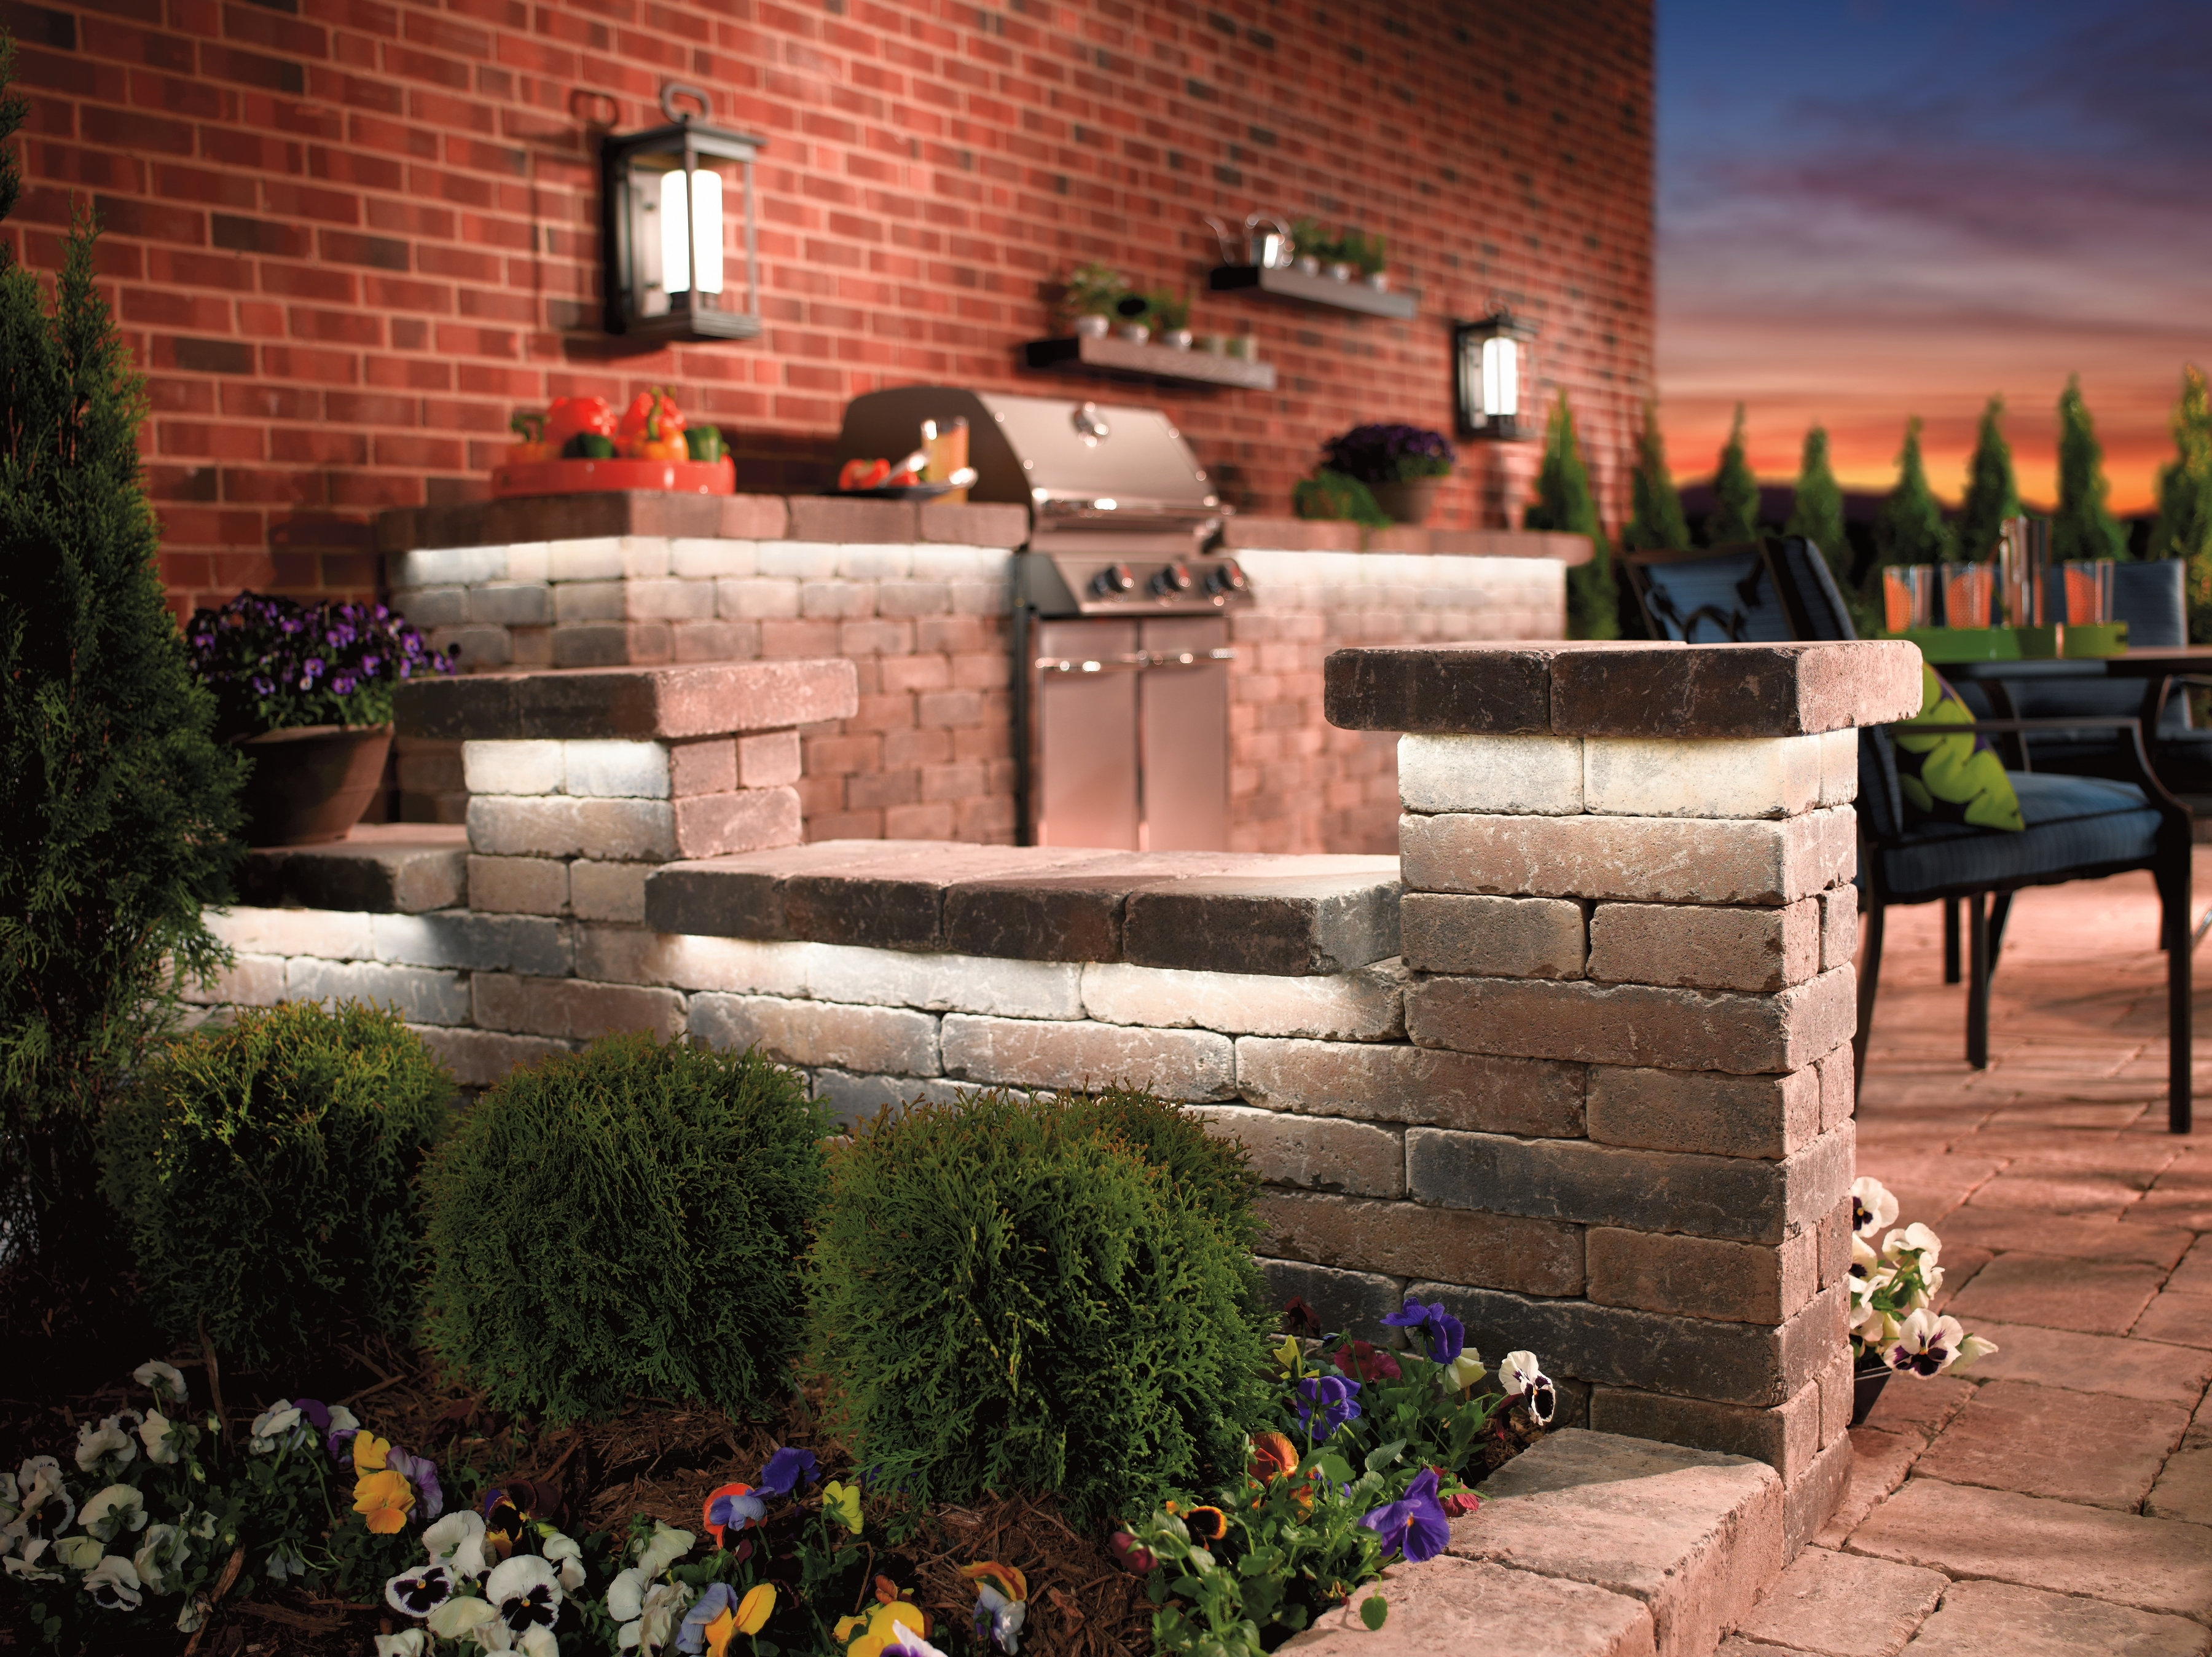 Kichler Outdoor Lanterns In Widely Used Lighting: Kichler Outdoor Lighting With Landscape Flood Lights And (View 12 of 20)